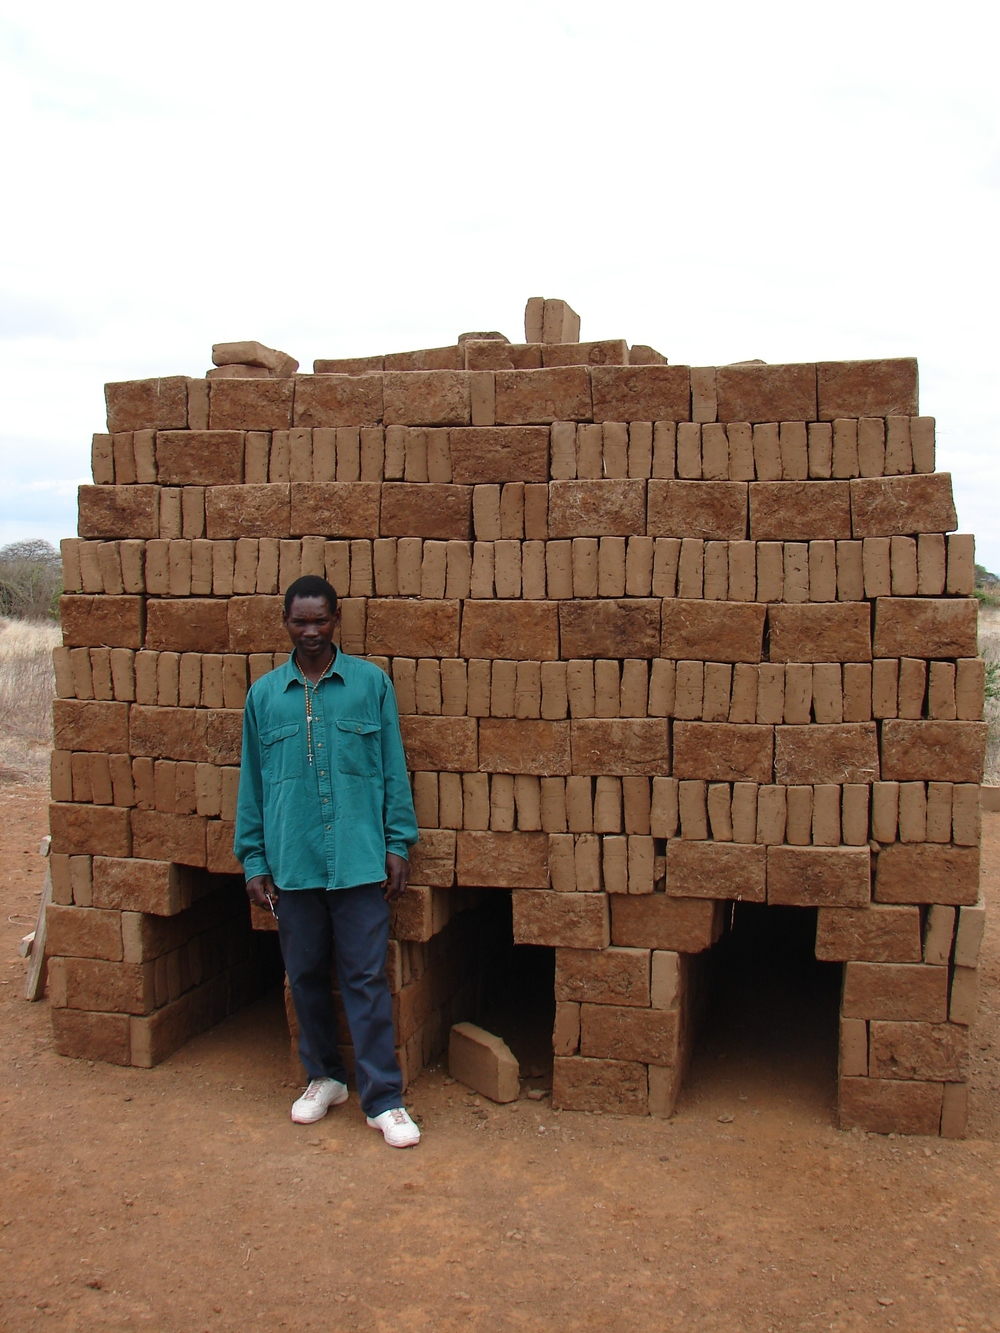 Clay bricks cut from the ground and stacked in preparation to be fired